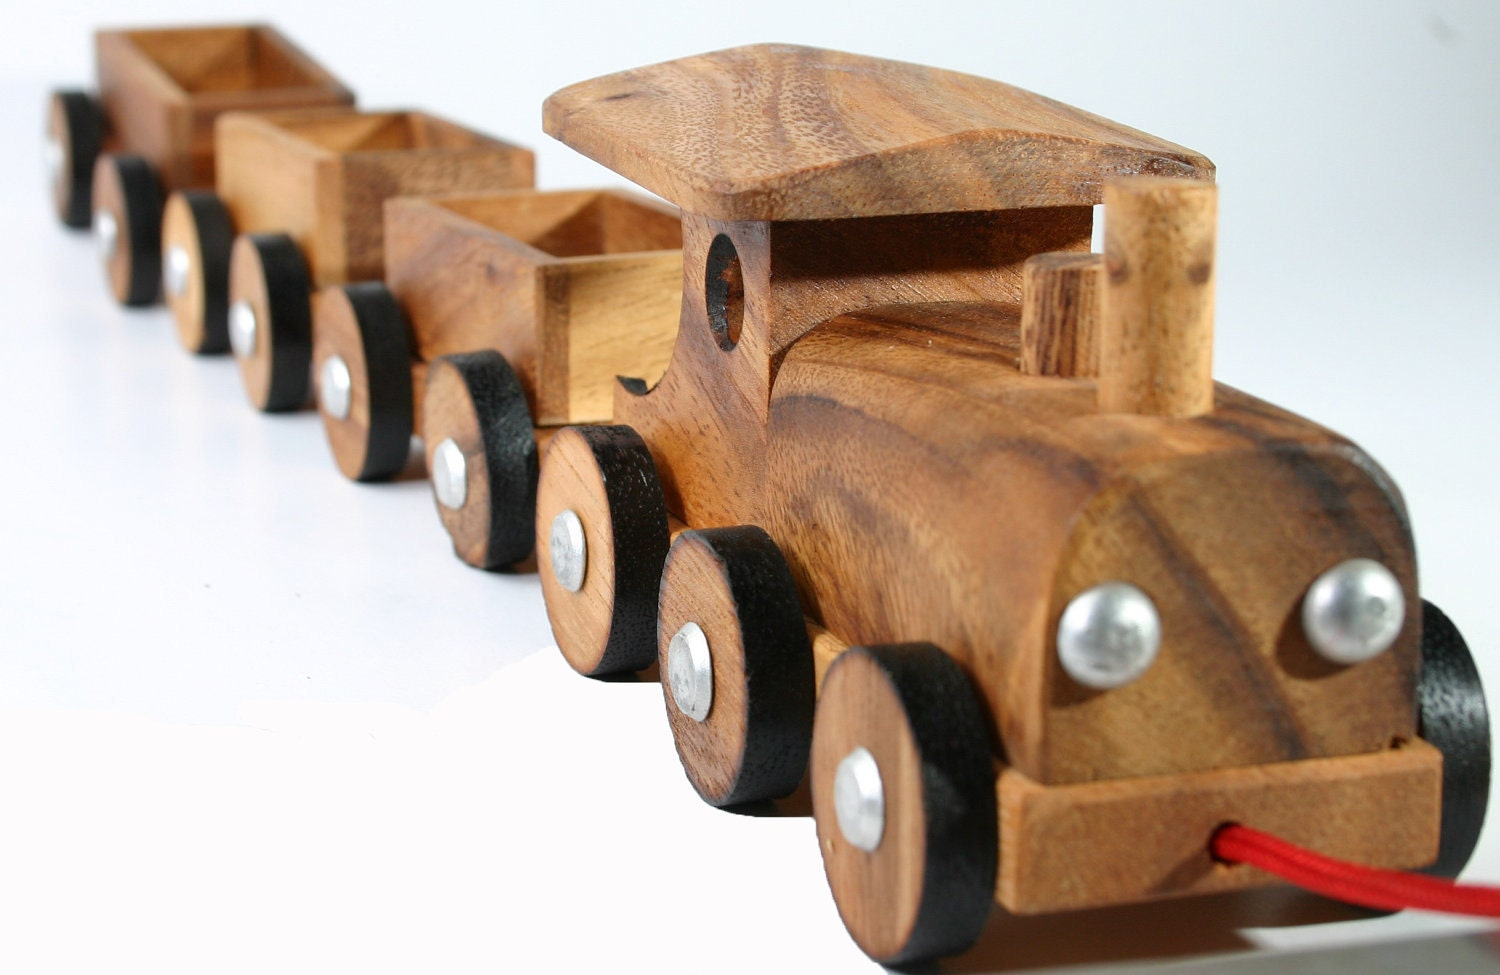 Wooden Toy Trains : Wooden toy trains